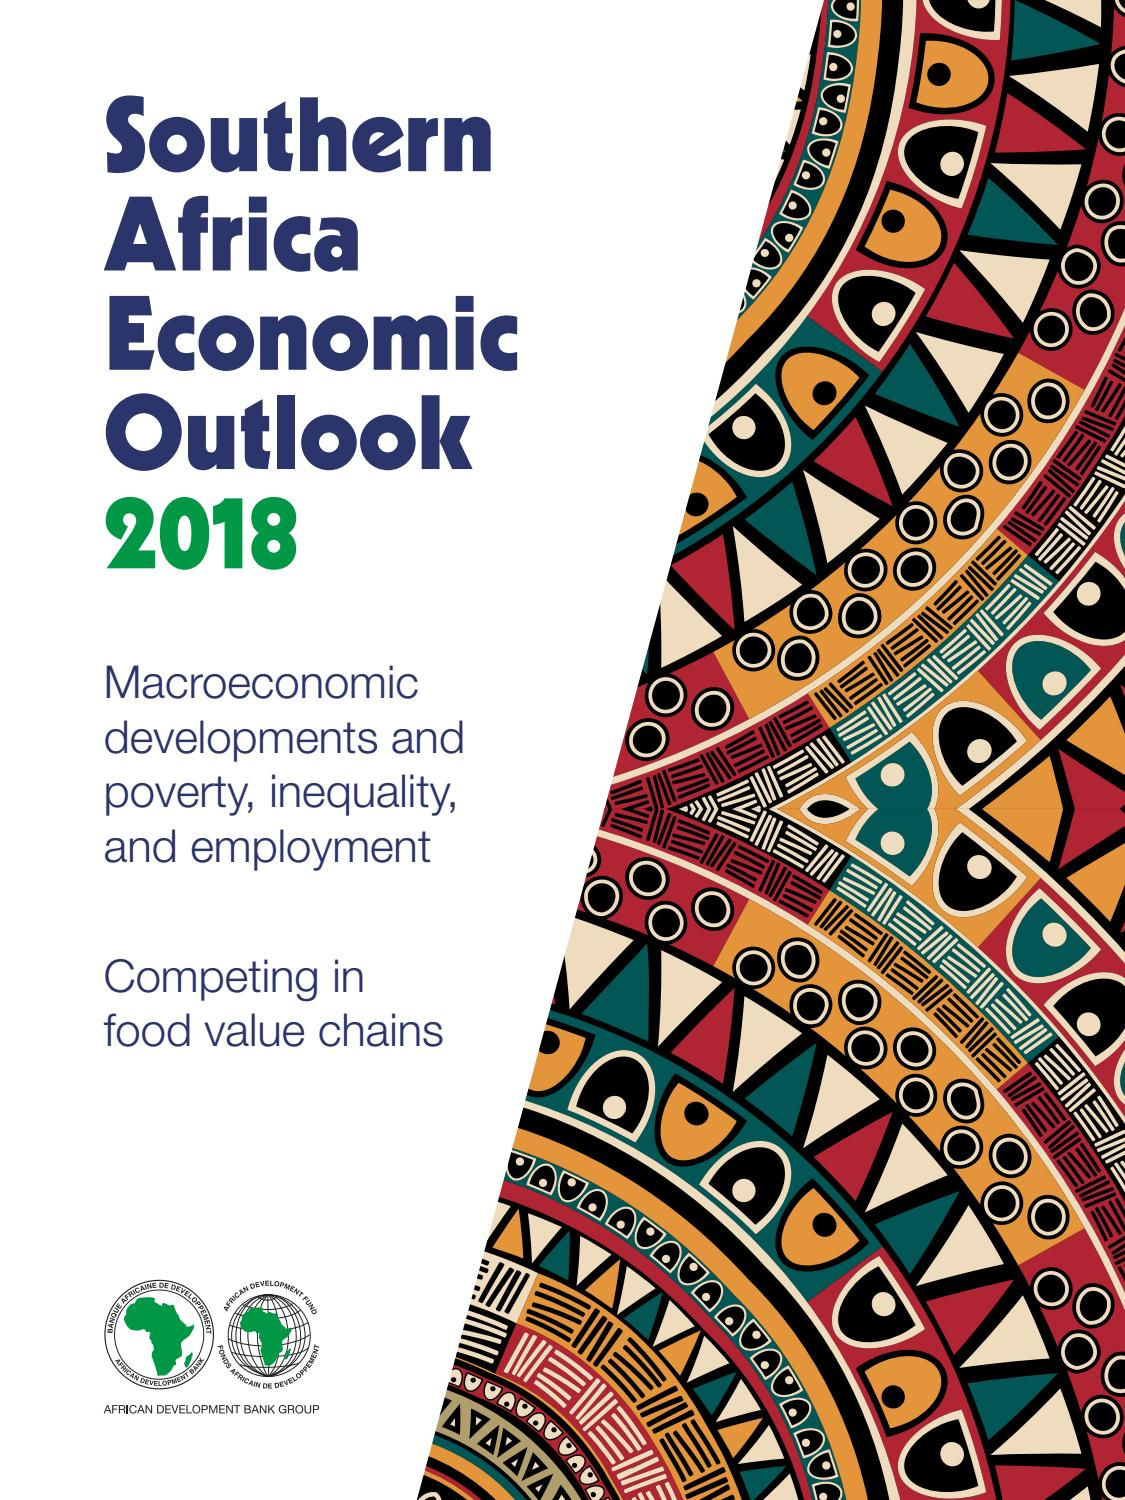 Southern Africa Economic Outlook 2018 by African Development